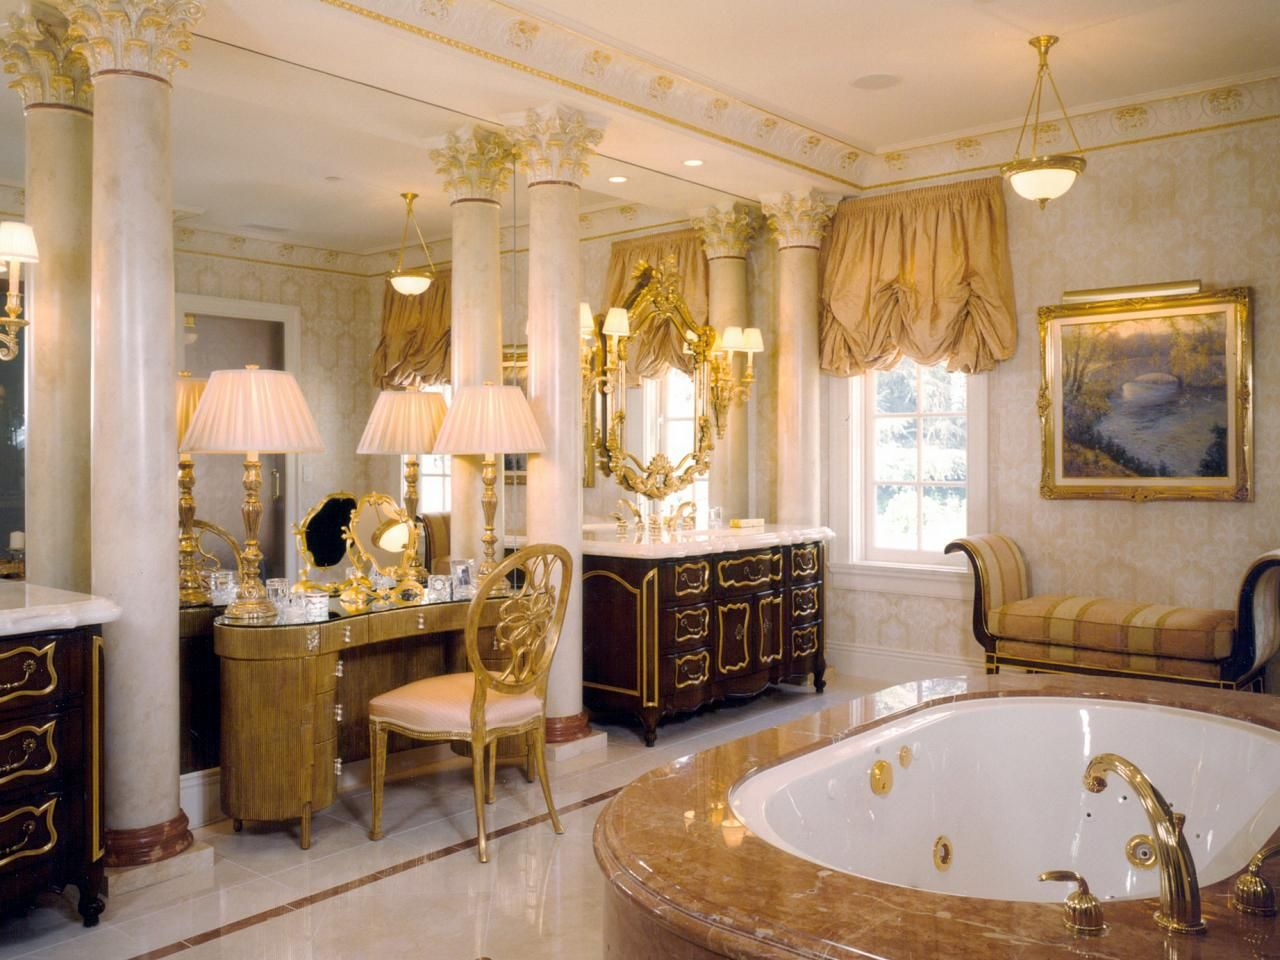 Meet the stunning top 8 millionaire bathrooms in the world for Purple and gold bathroom ideas